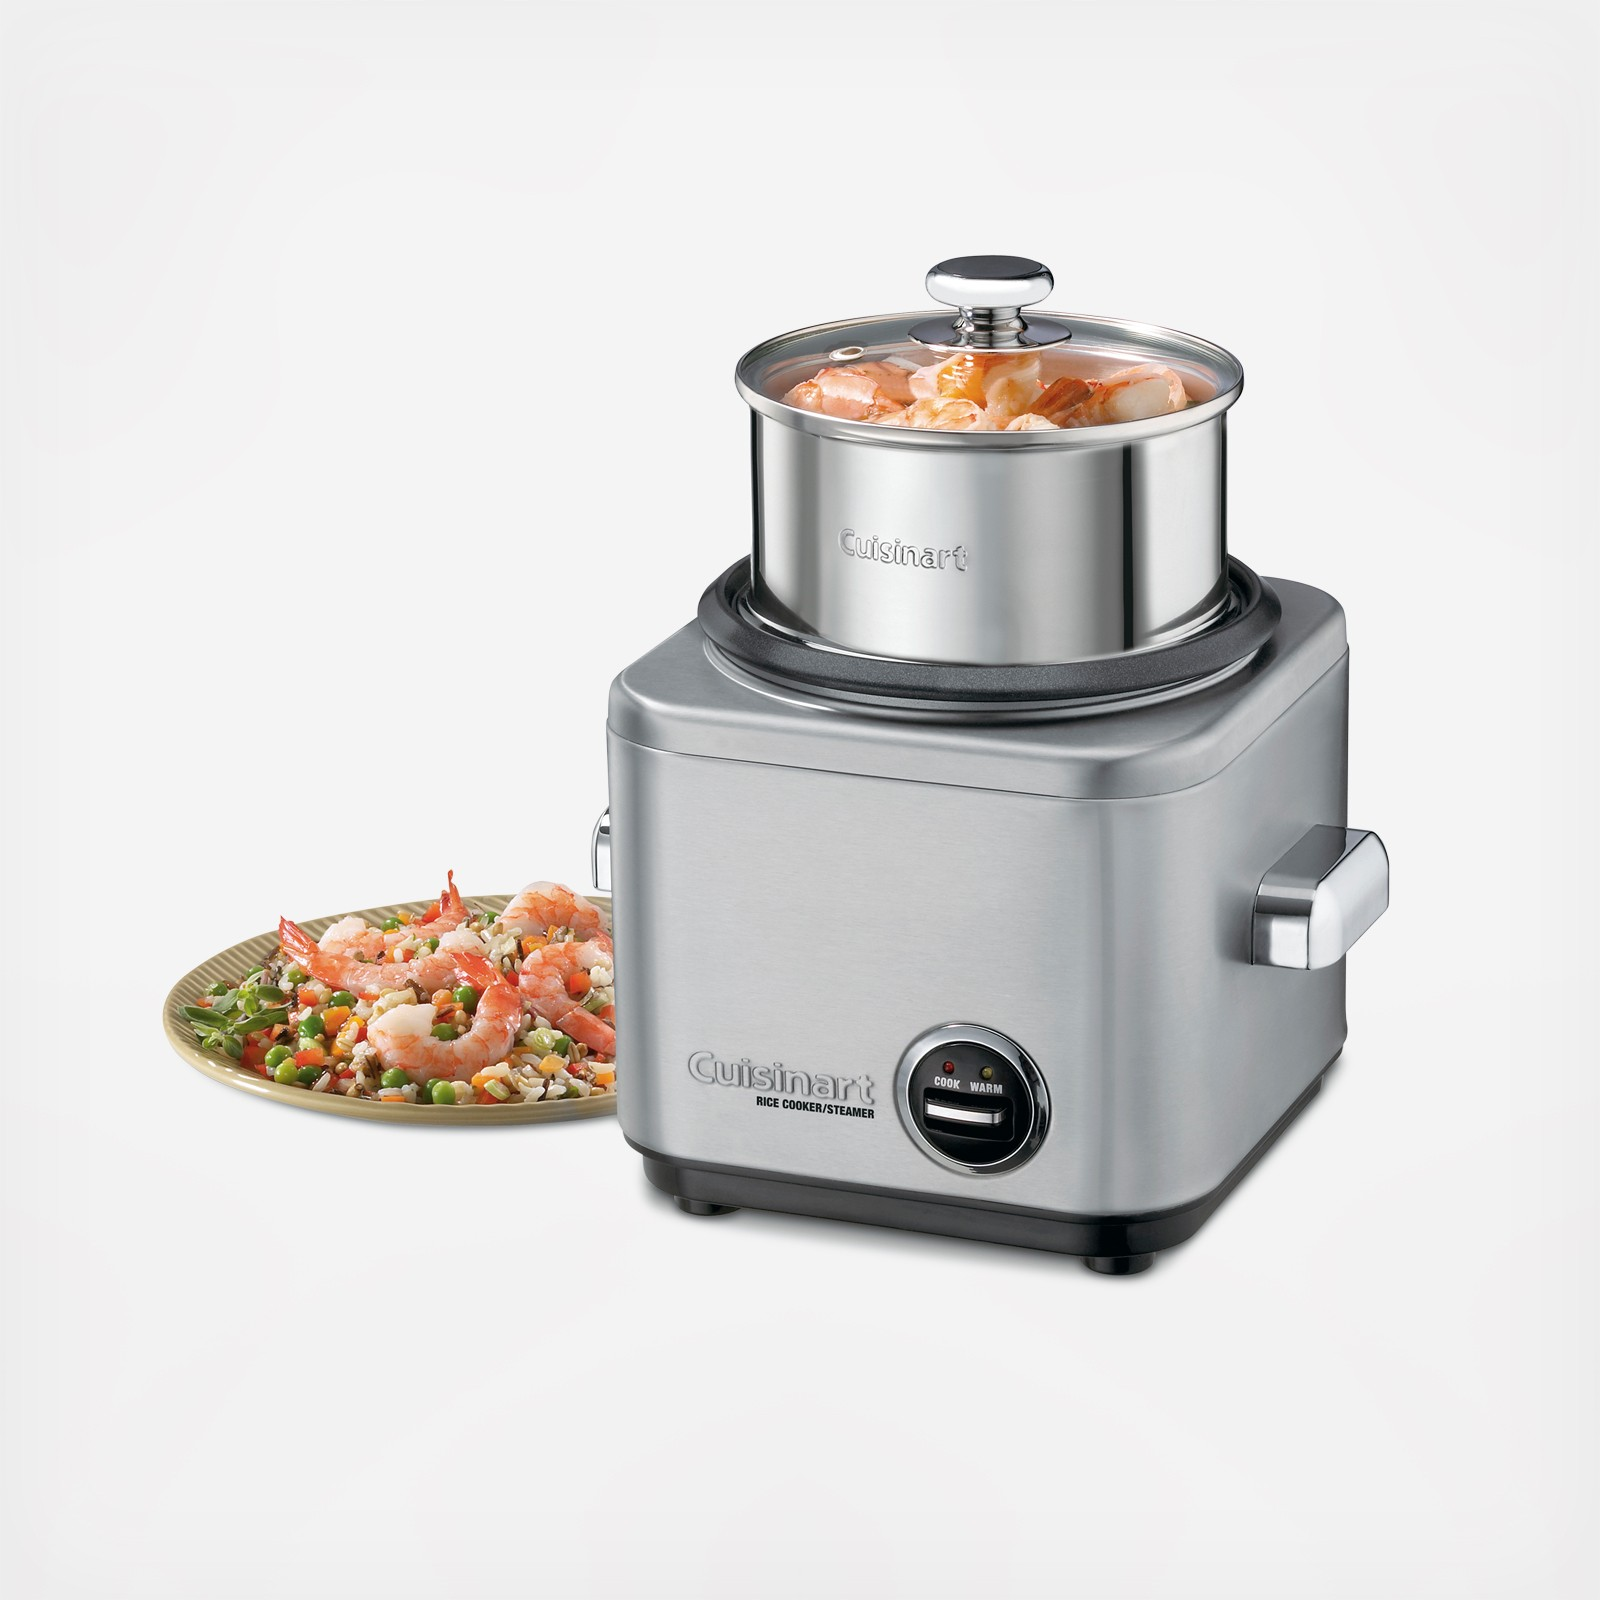 Pressure cooker bed bath beyond - Meredith Grausam And Corry Boatwright S Wedding Registry On Zola Wedding Planning Registry Gifts